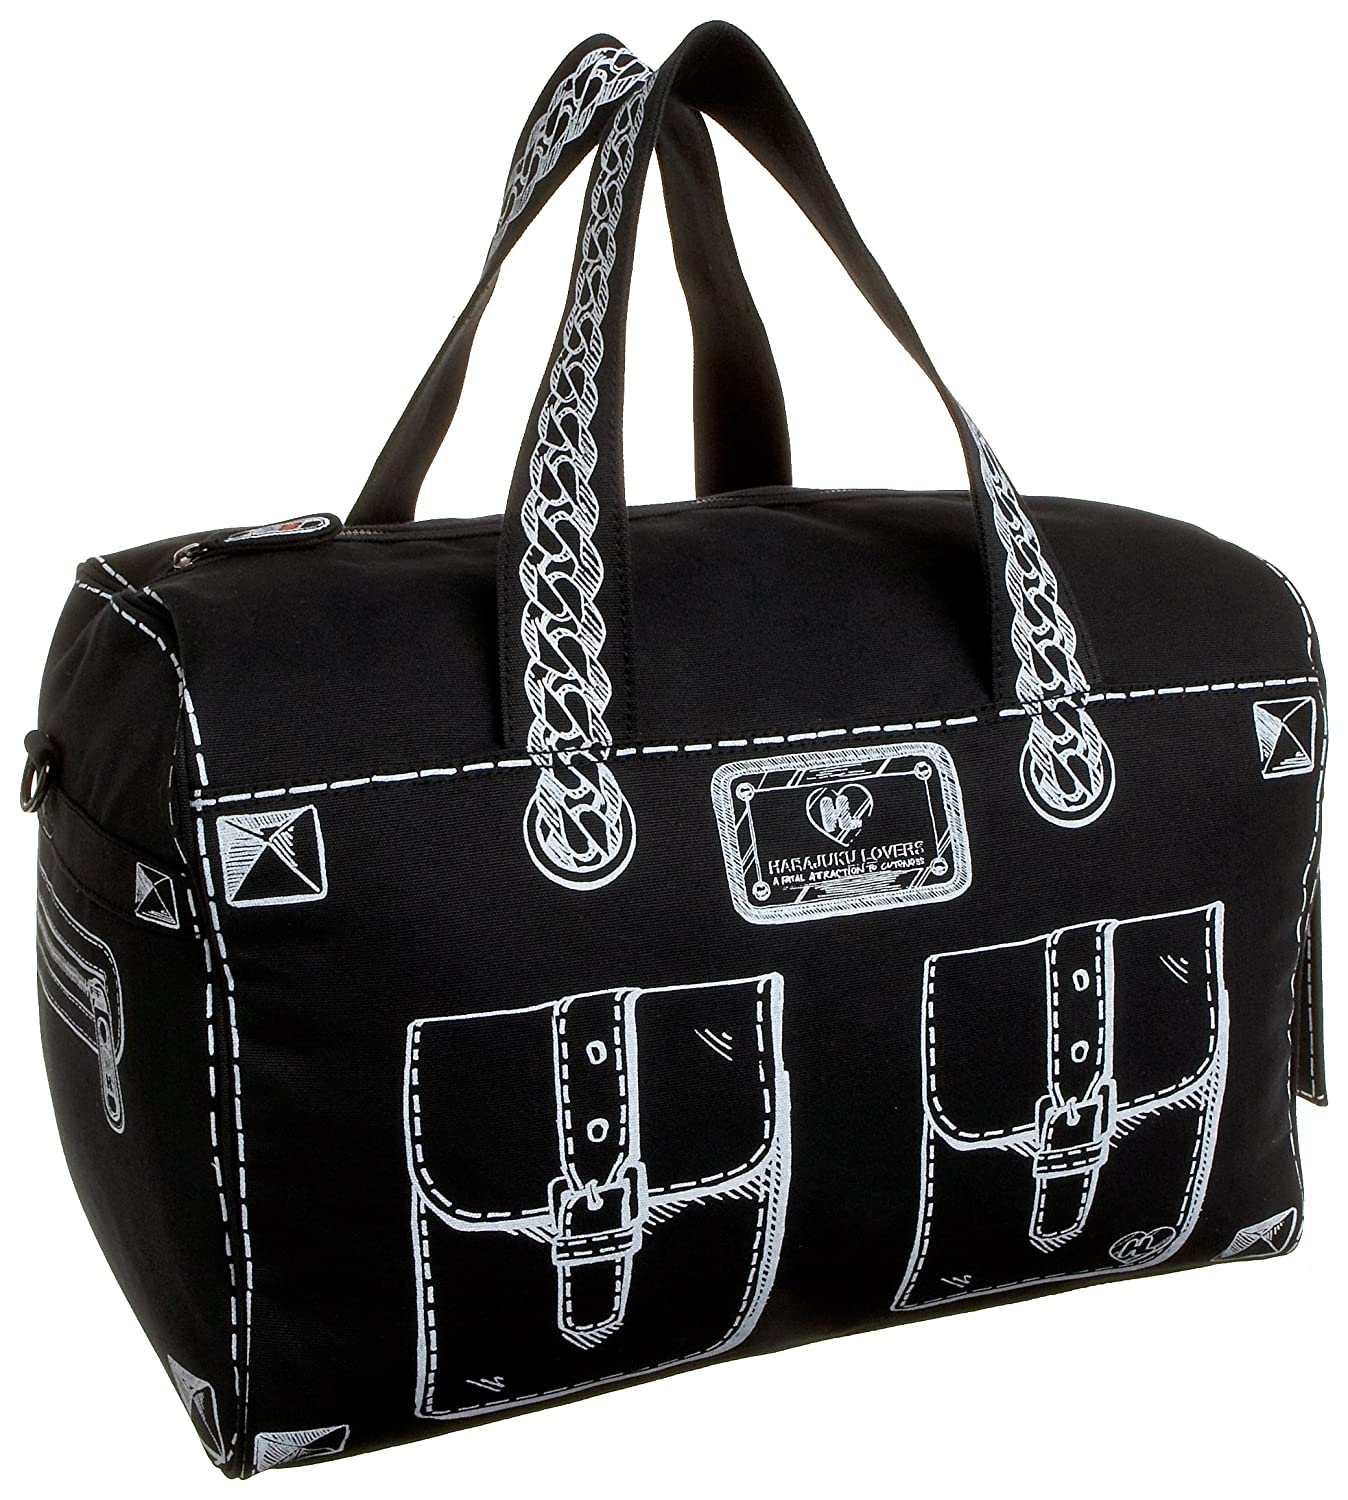 Harajuku Lovers Trompe L'oiel Trouble Satchel - Free Overnight Shipping & Return Shipping: Endless.com :  handles shoulder satchel zipper